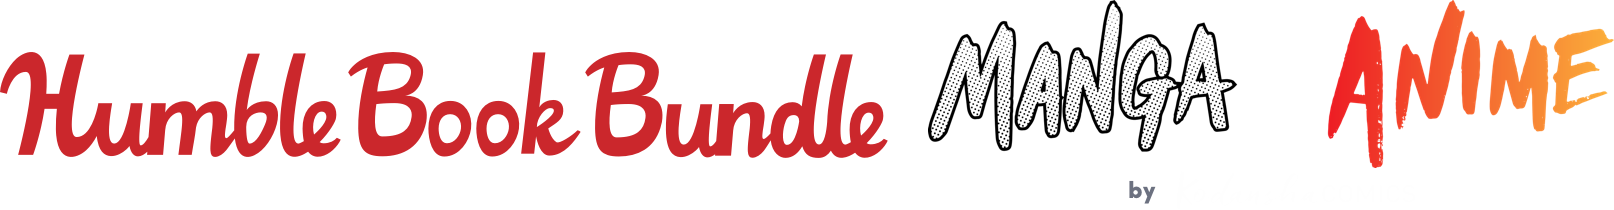 The Humble Manga Bundle: Manga to Anime by Kodansha